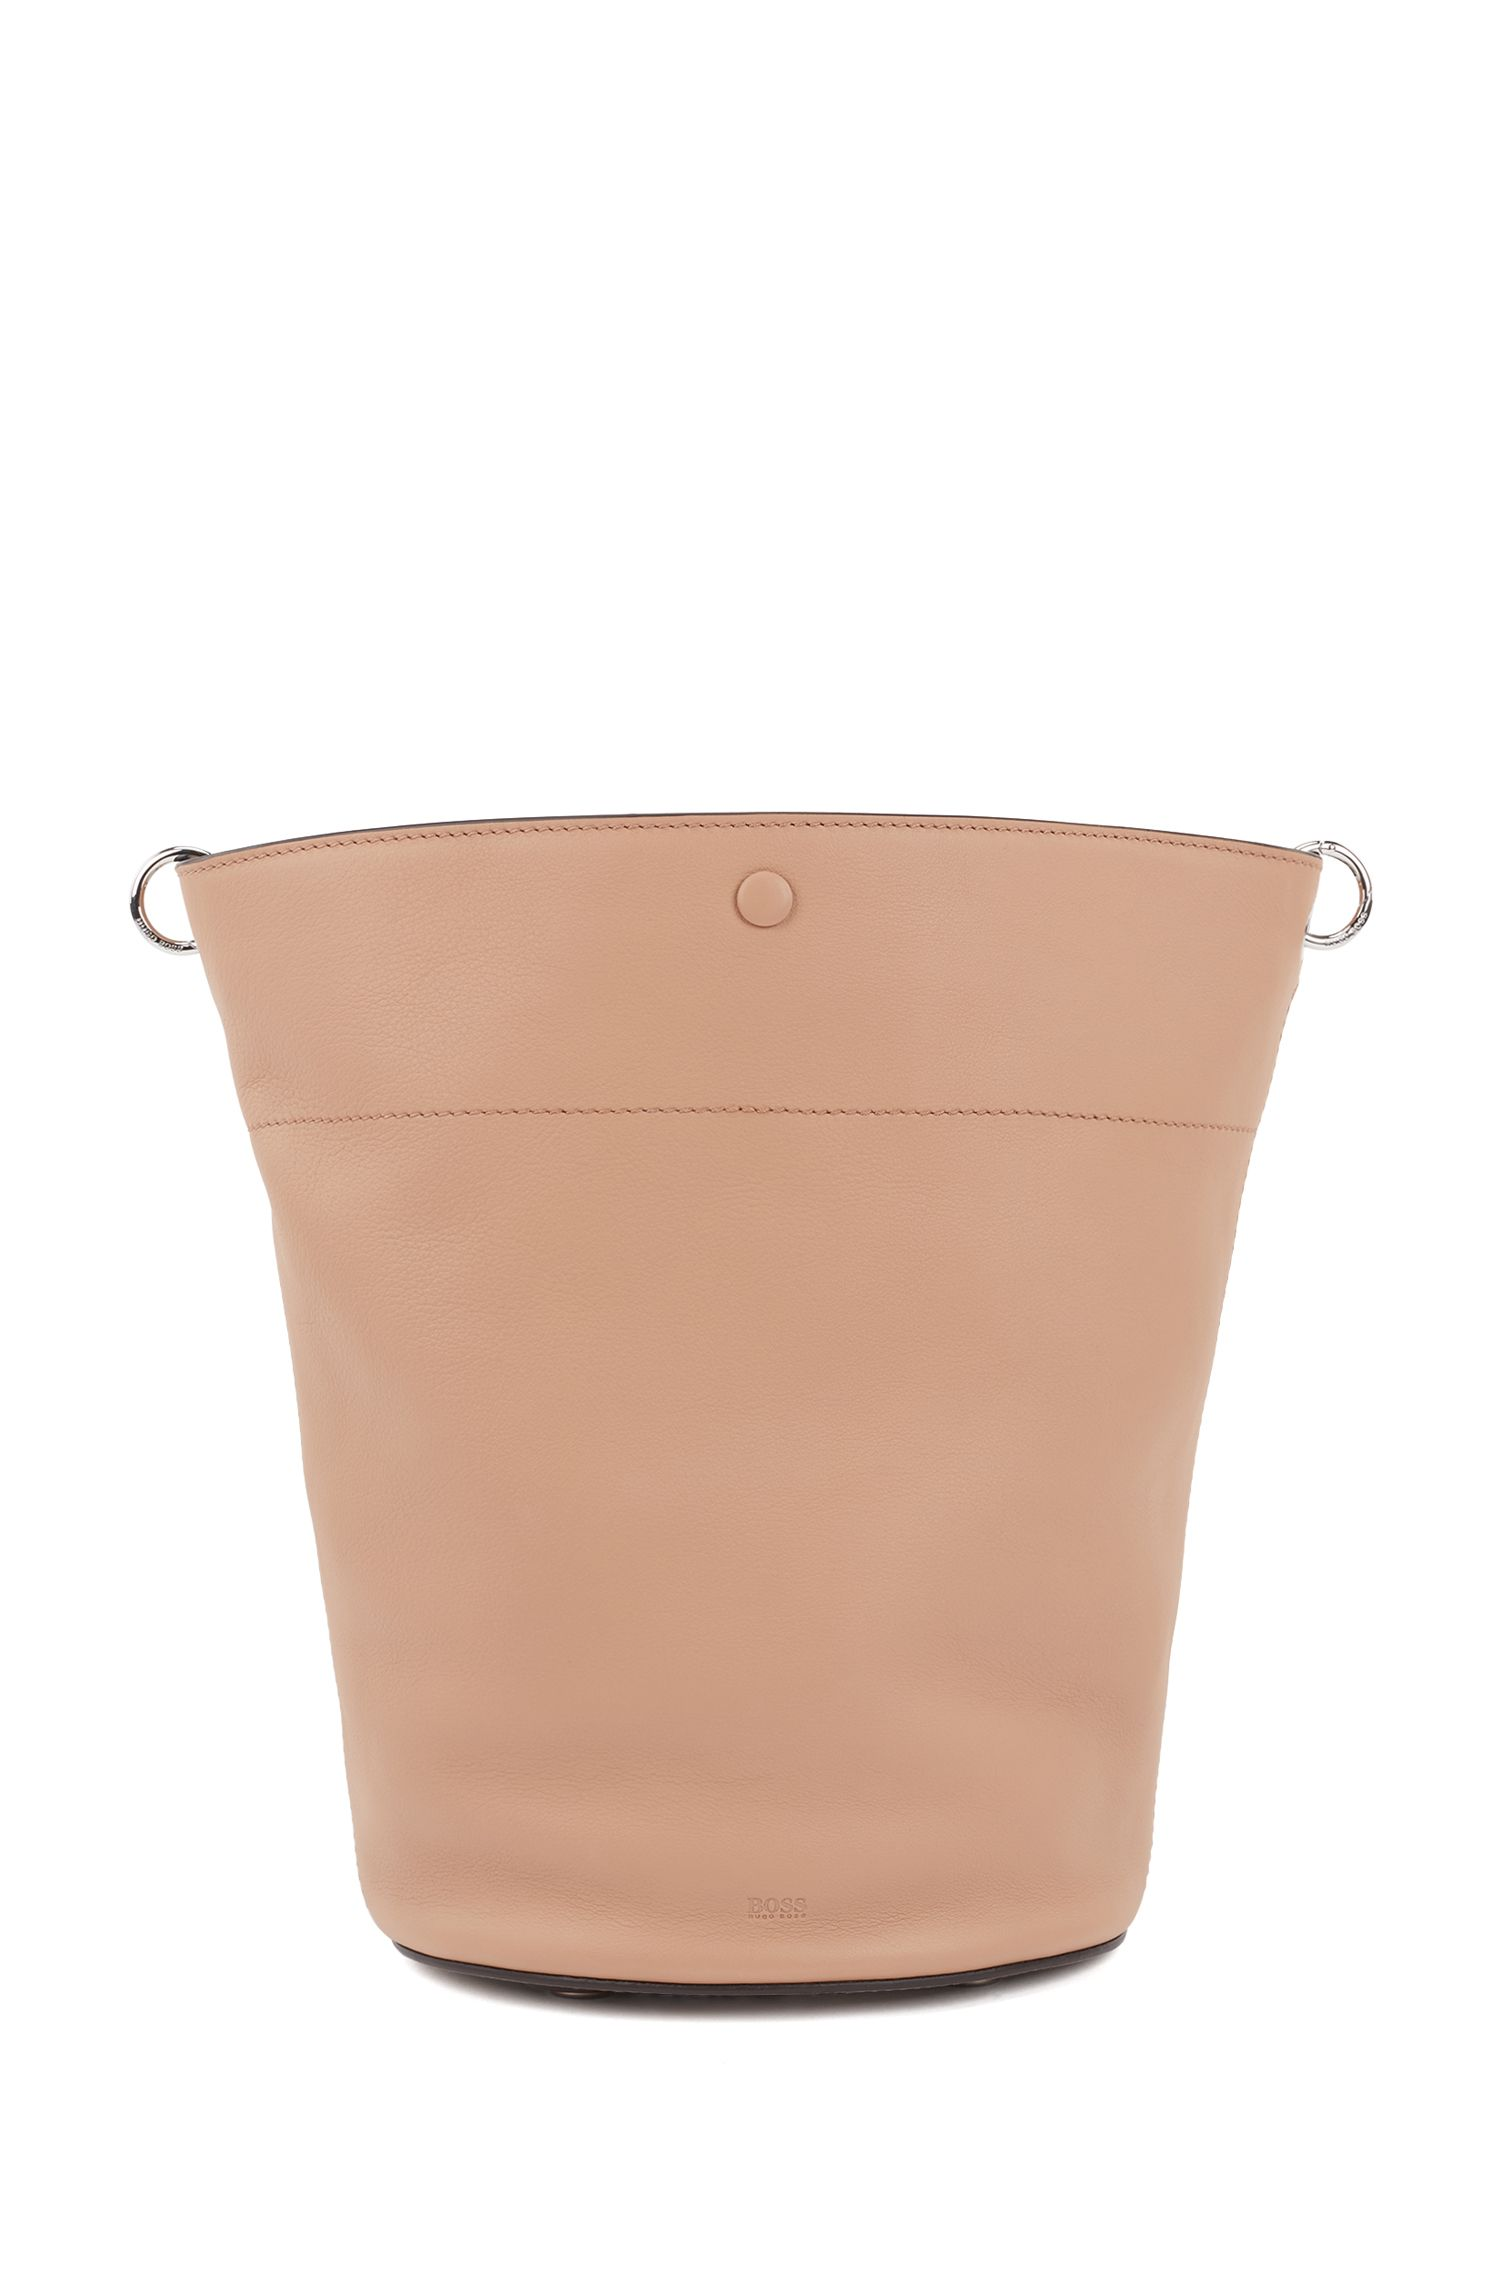 Bucket bag in calf leather with knotted top strap, Beige